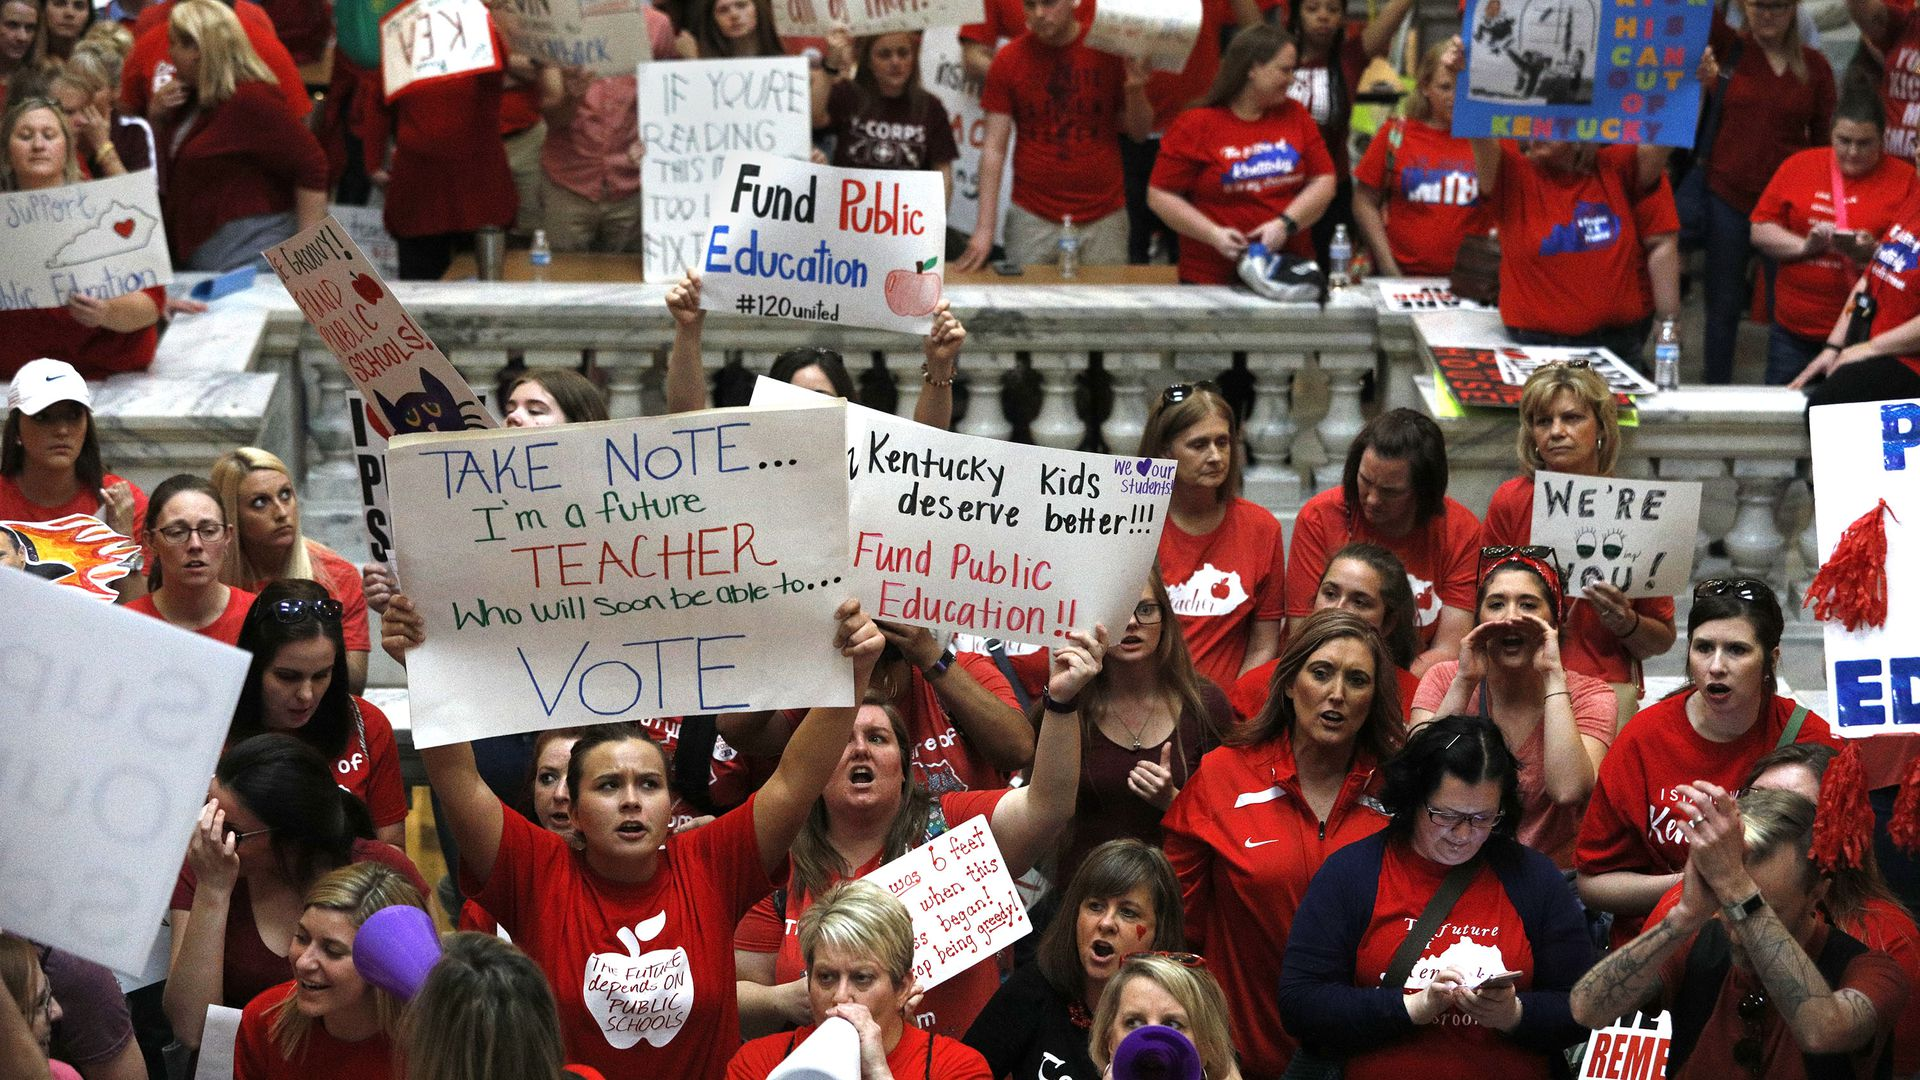 Kentucky Public school teachers protest outside the Kentucky House Chamber over a controversial pension reform bill which Gov. Bevin signed into law. Photo: Bill Pugliano/Getty Images